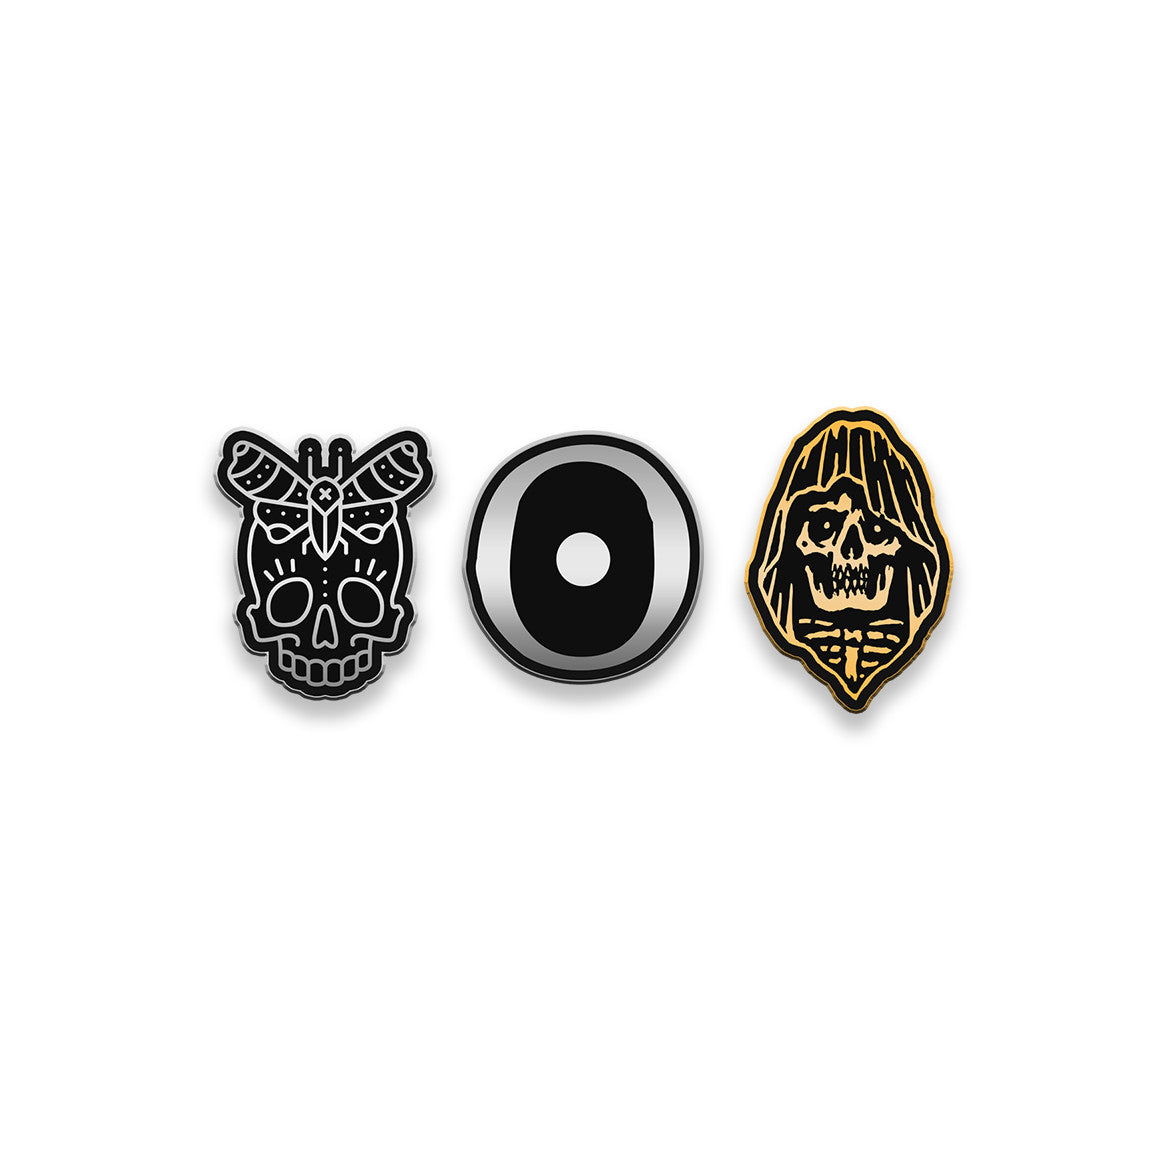 Bad Omens Enamel Pin Pack